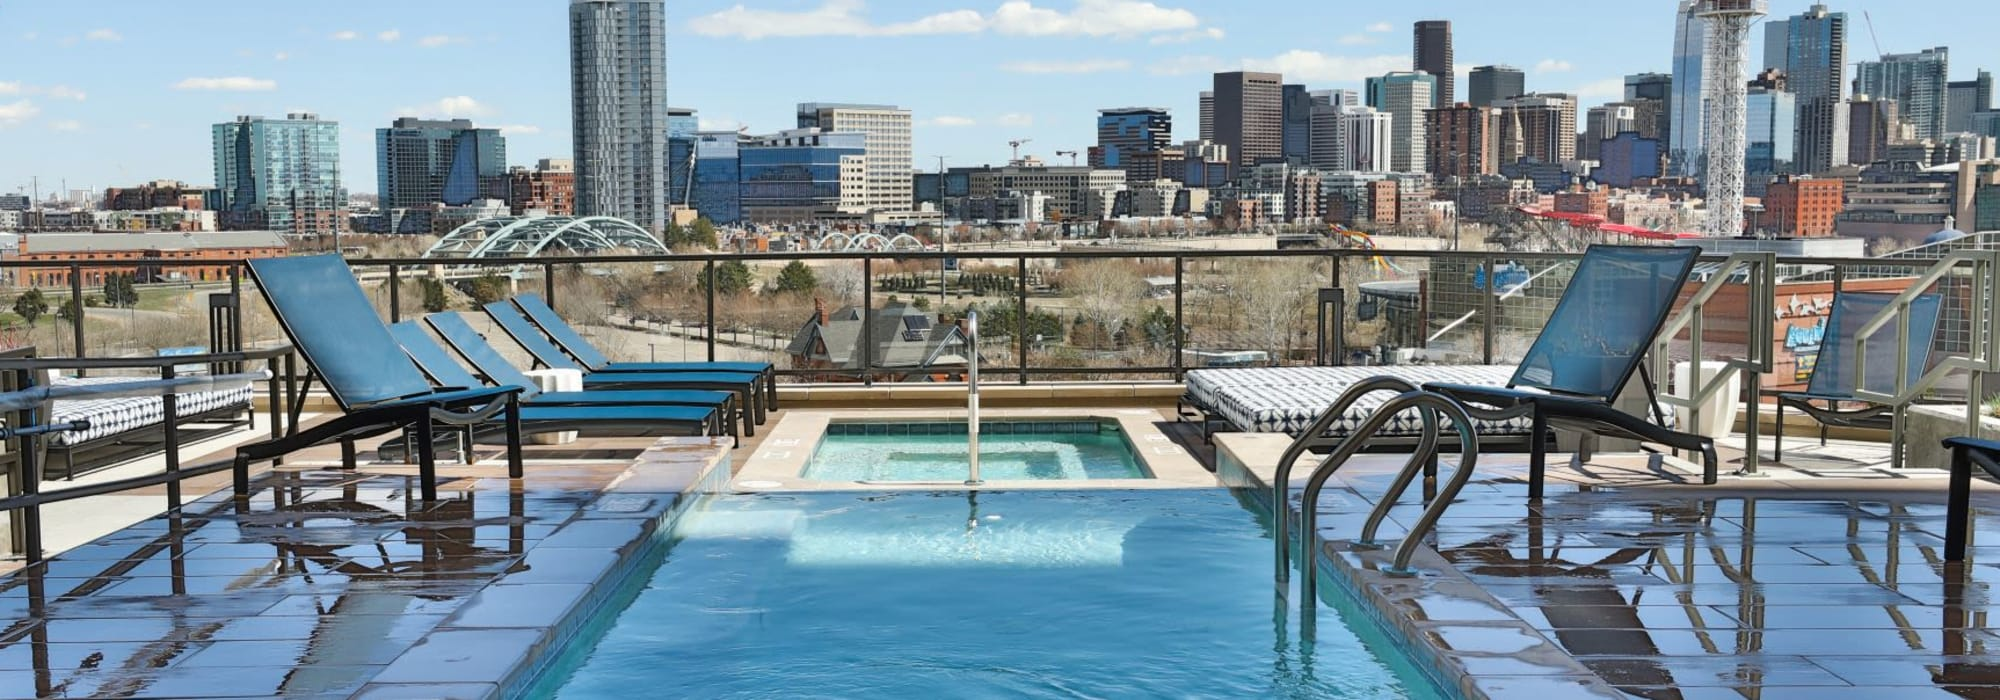 Resort-style swimming pool with shaded lounge seating nearby at The Alcott in Denver, Colorado